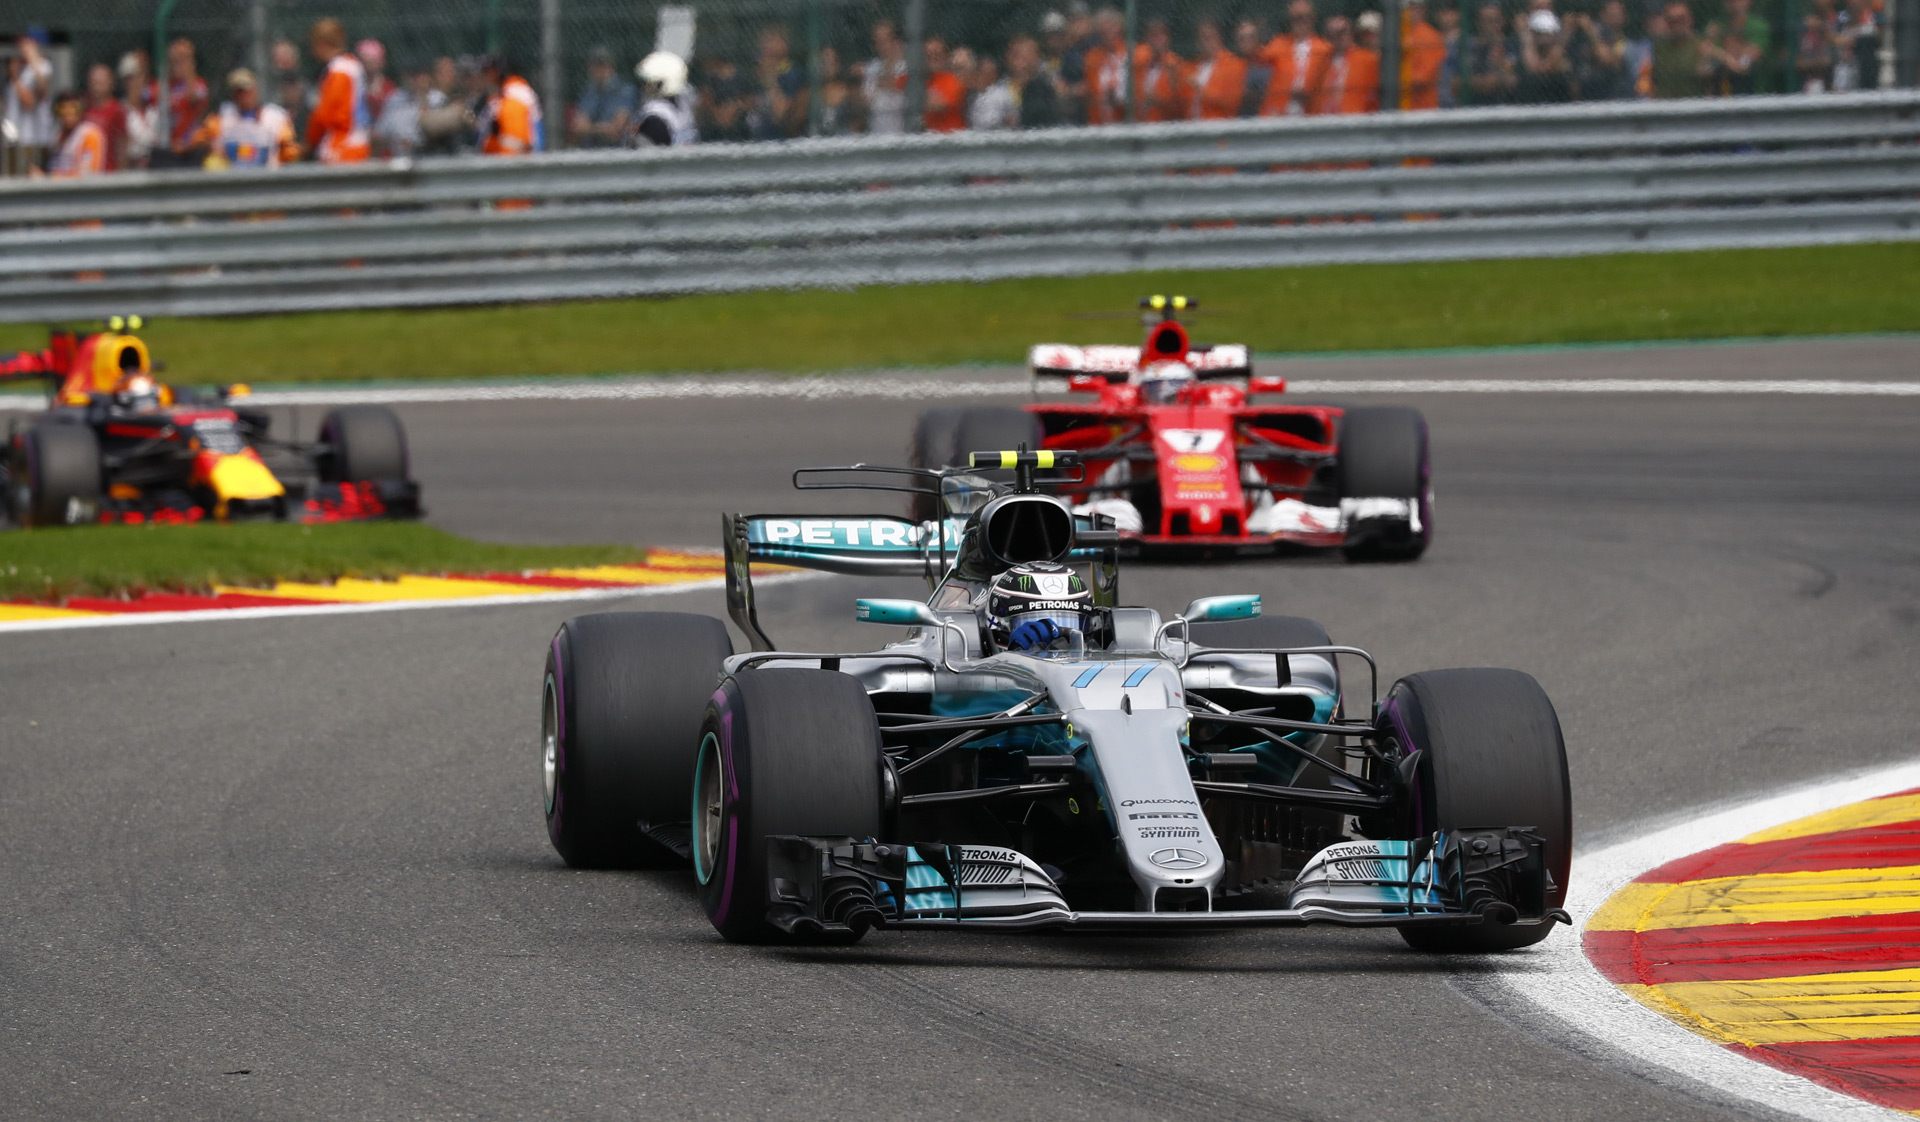 hamilton holds off vettel at 2017 formula 1 belgian grand prix. Black Bedroom Furniture Sets. Home Design Ideas